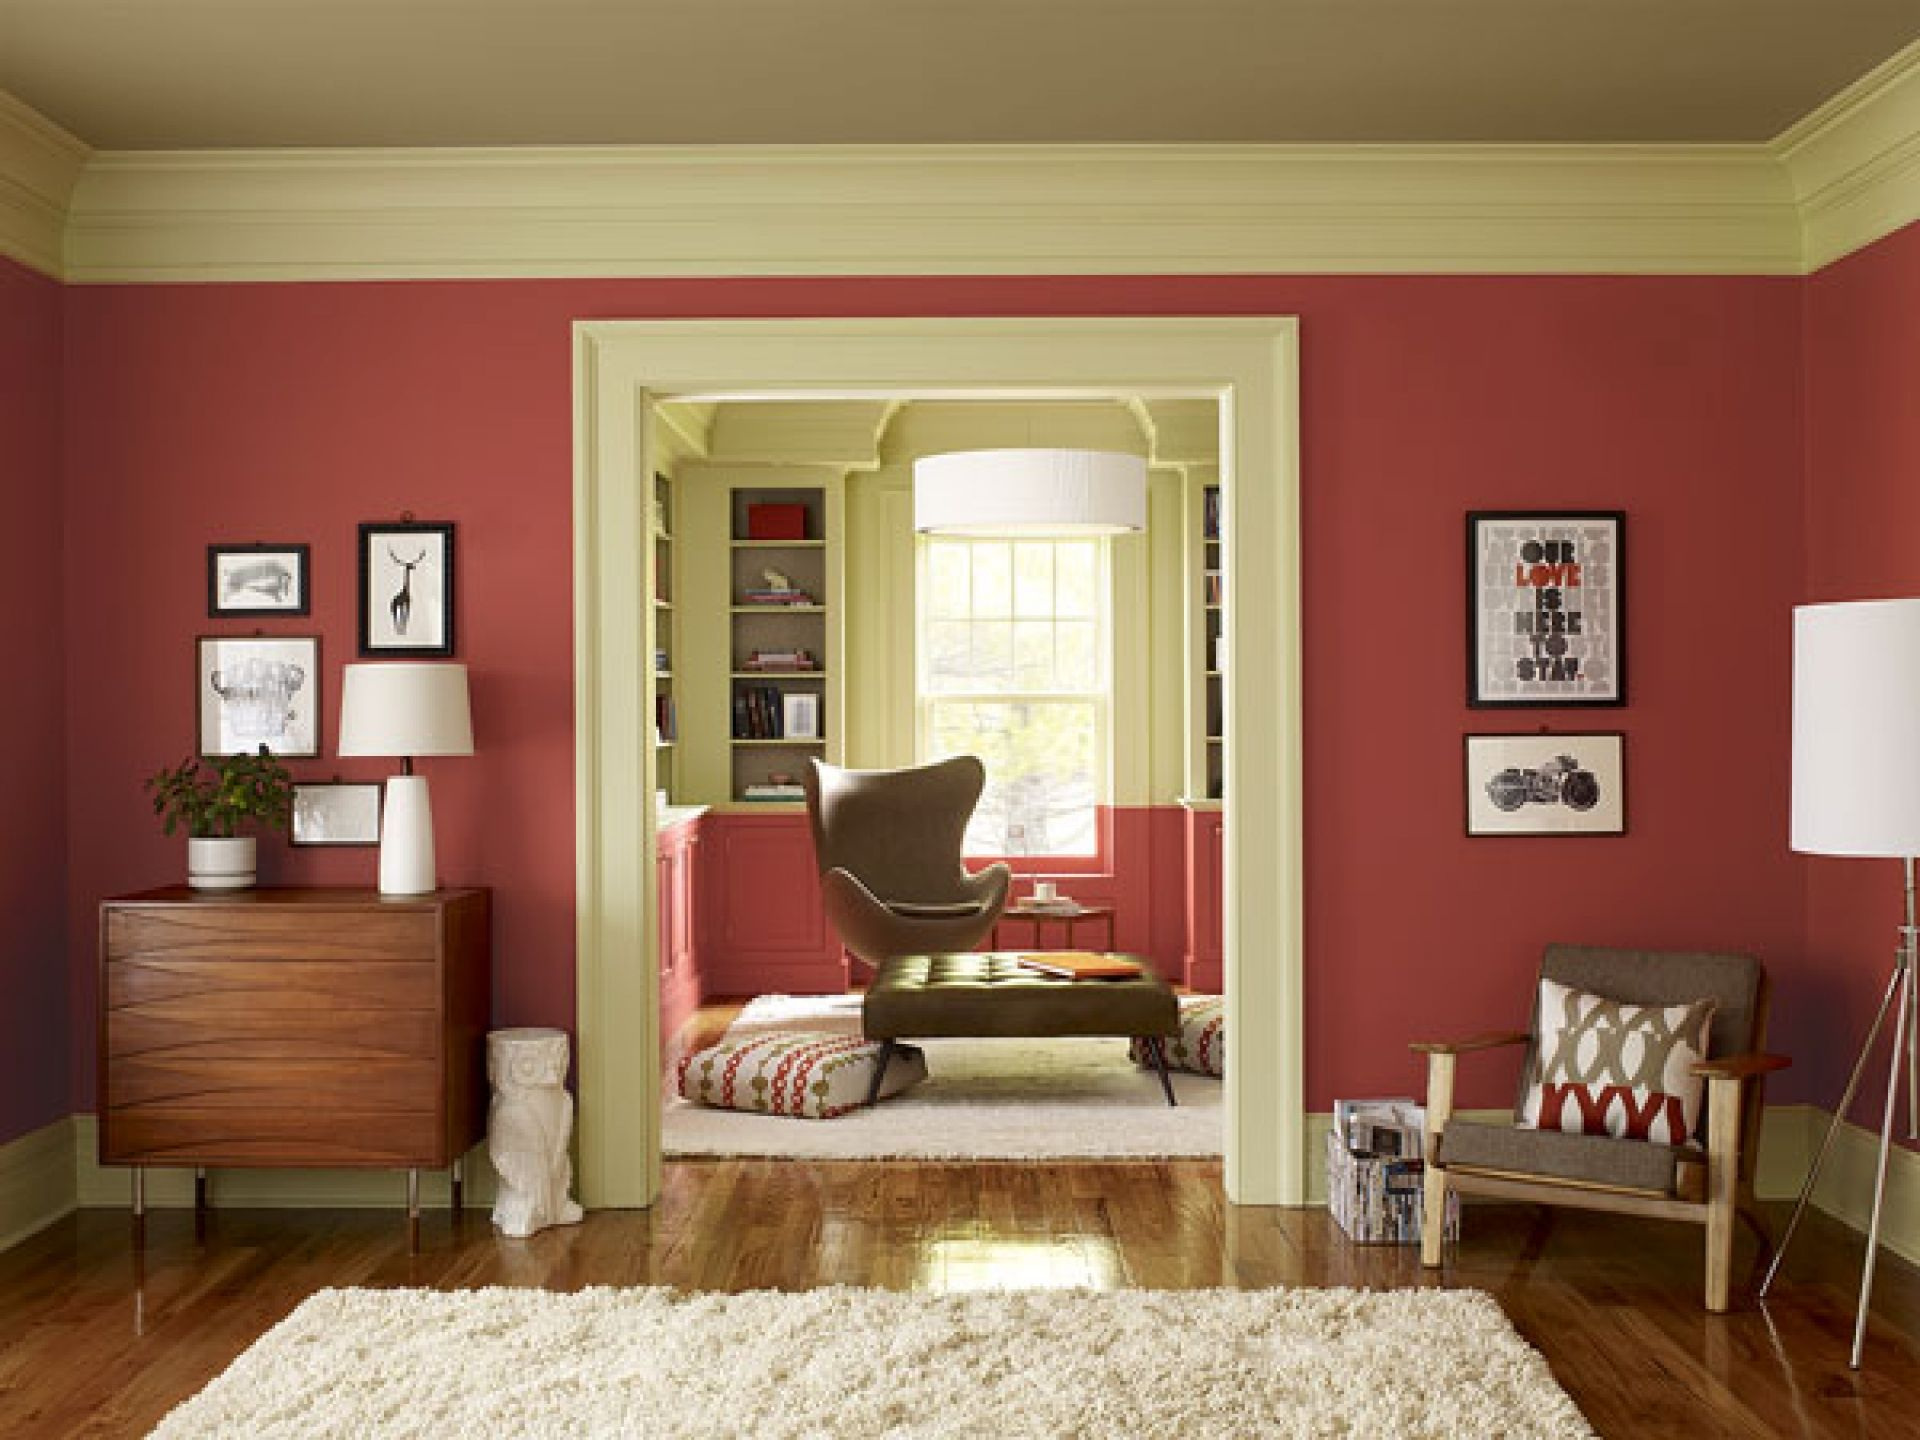 Stunning Bedroom Color Combination Design: Love how the wainscoting ...